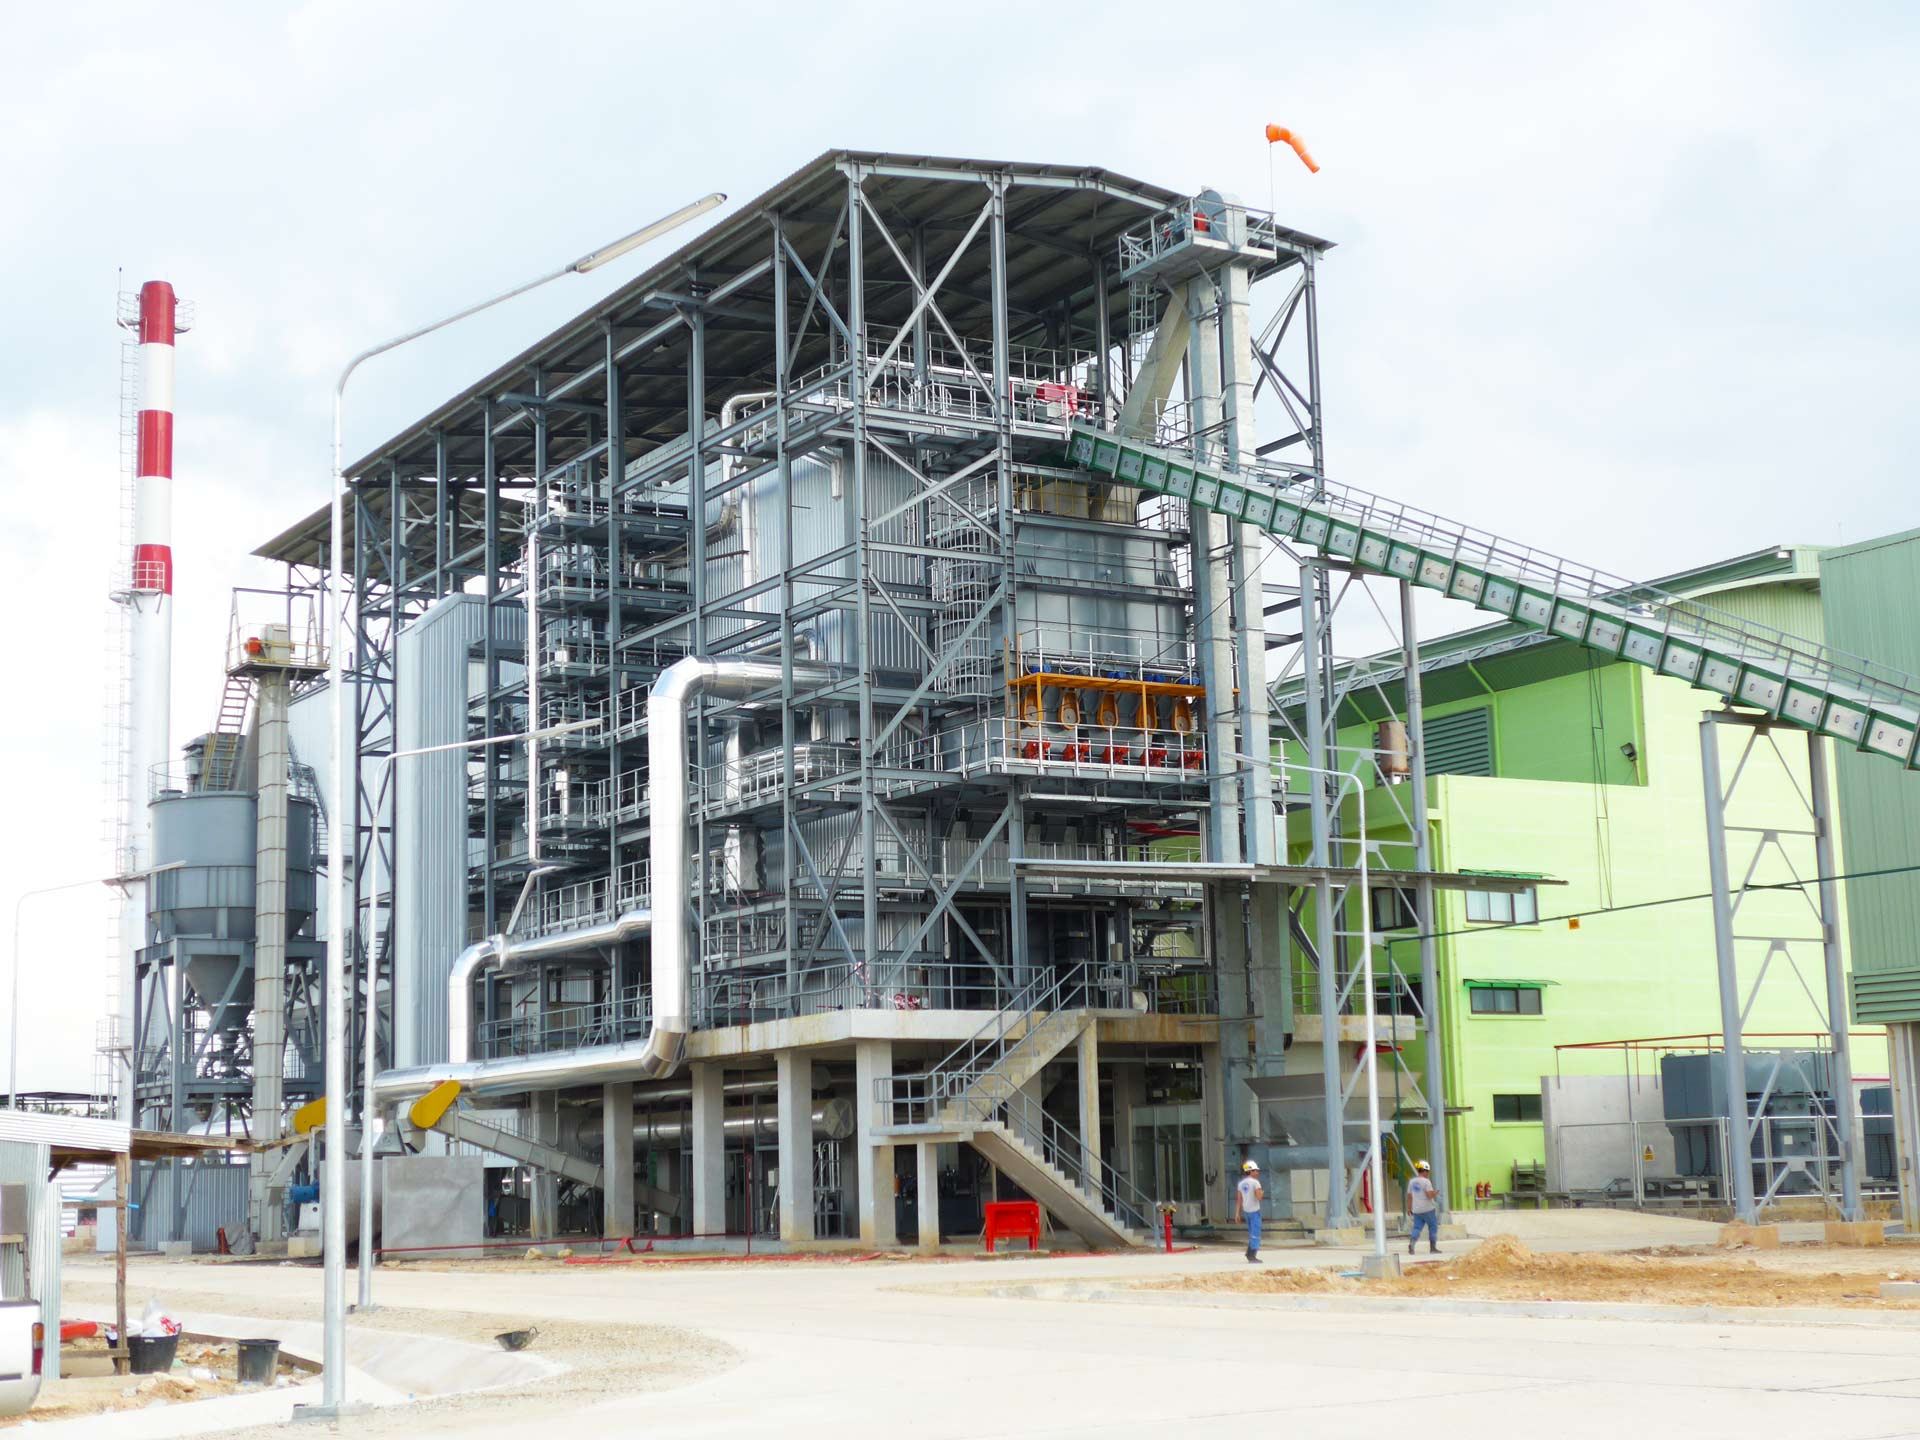 Songkhla, Thailand Fuel: Rubberwood Woodchips  Capacity: 9.9 MW, 50tons/hr boiler @ 54 bar(g), 460oC with step grate